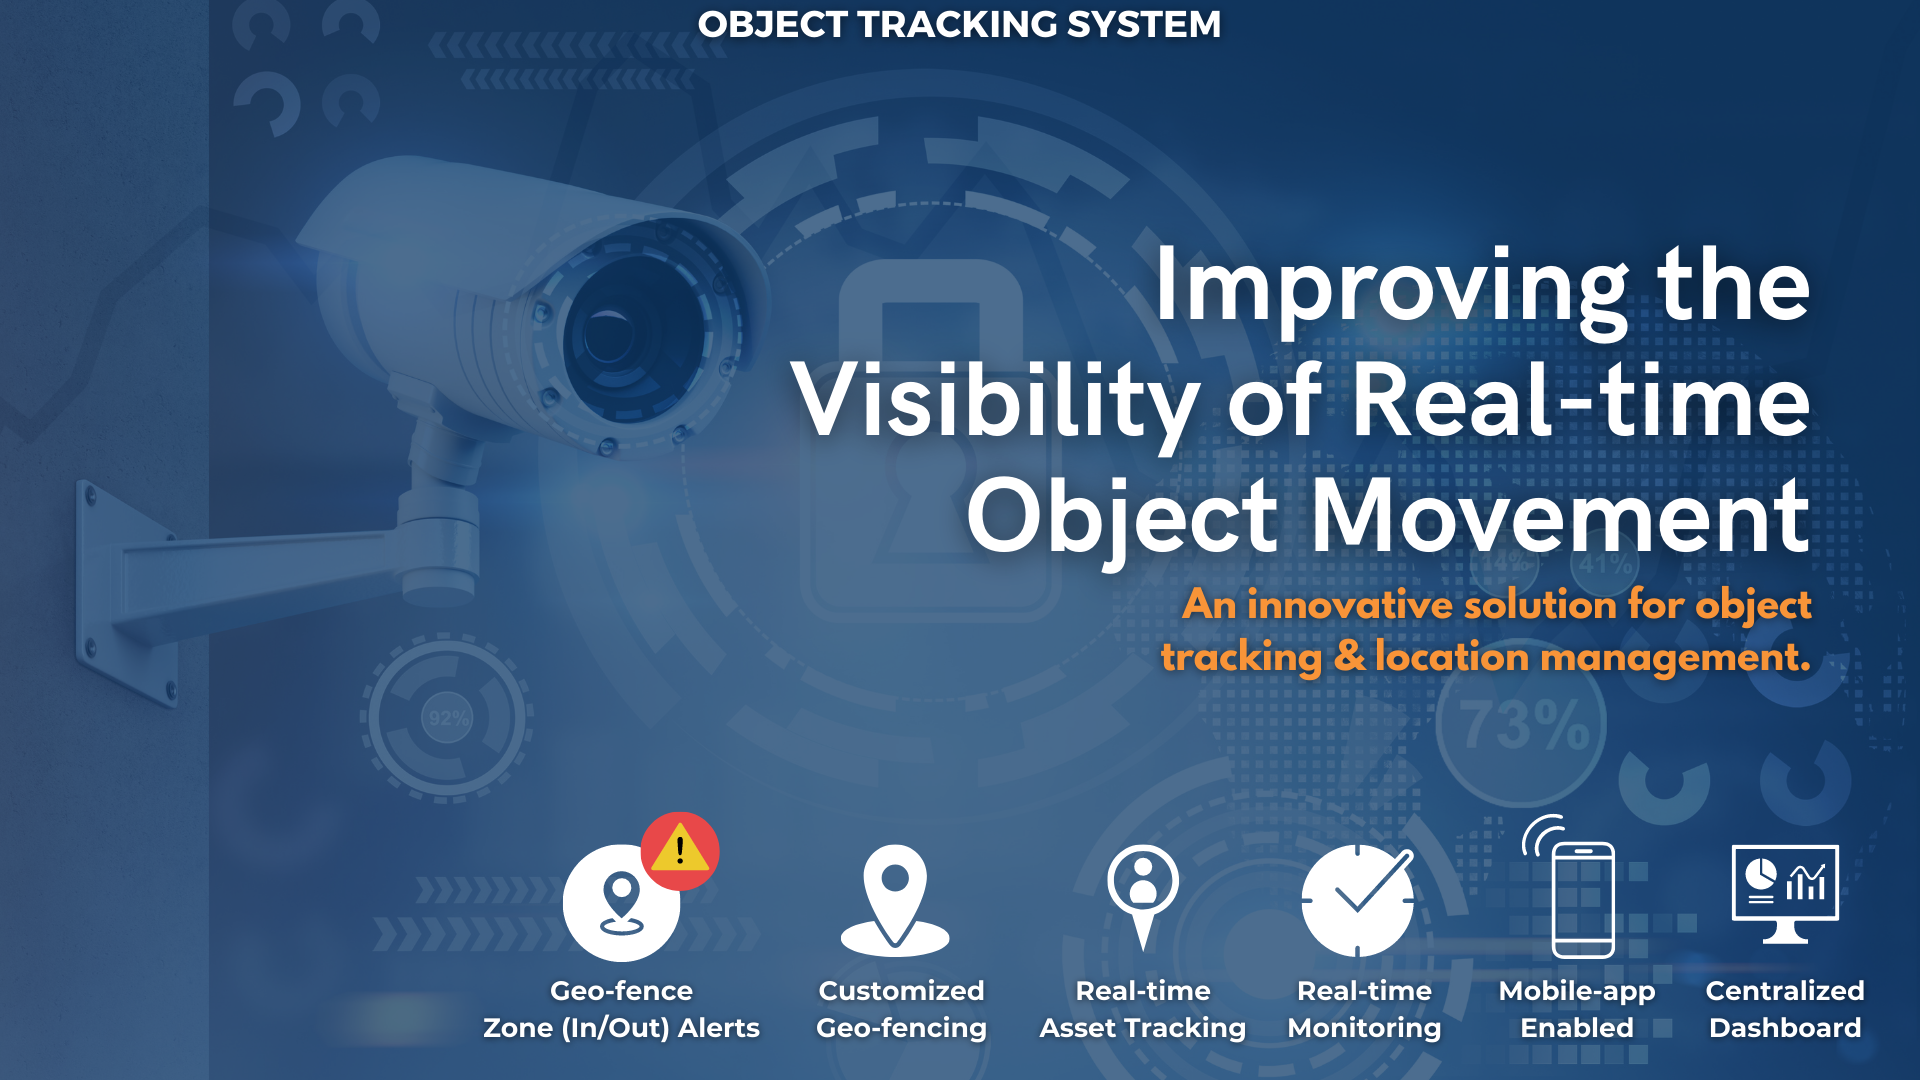 Object Tracking System 1